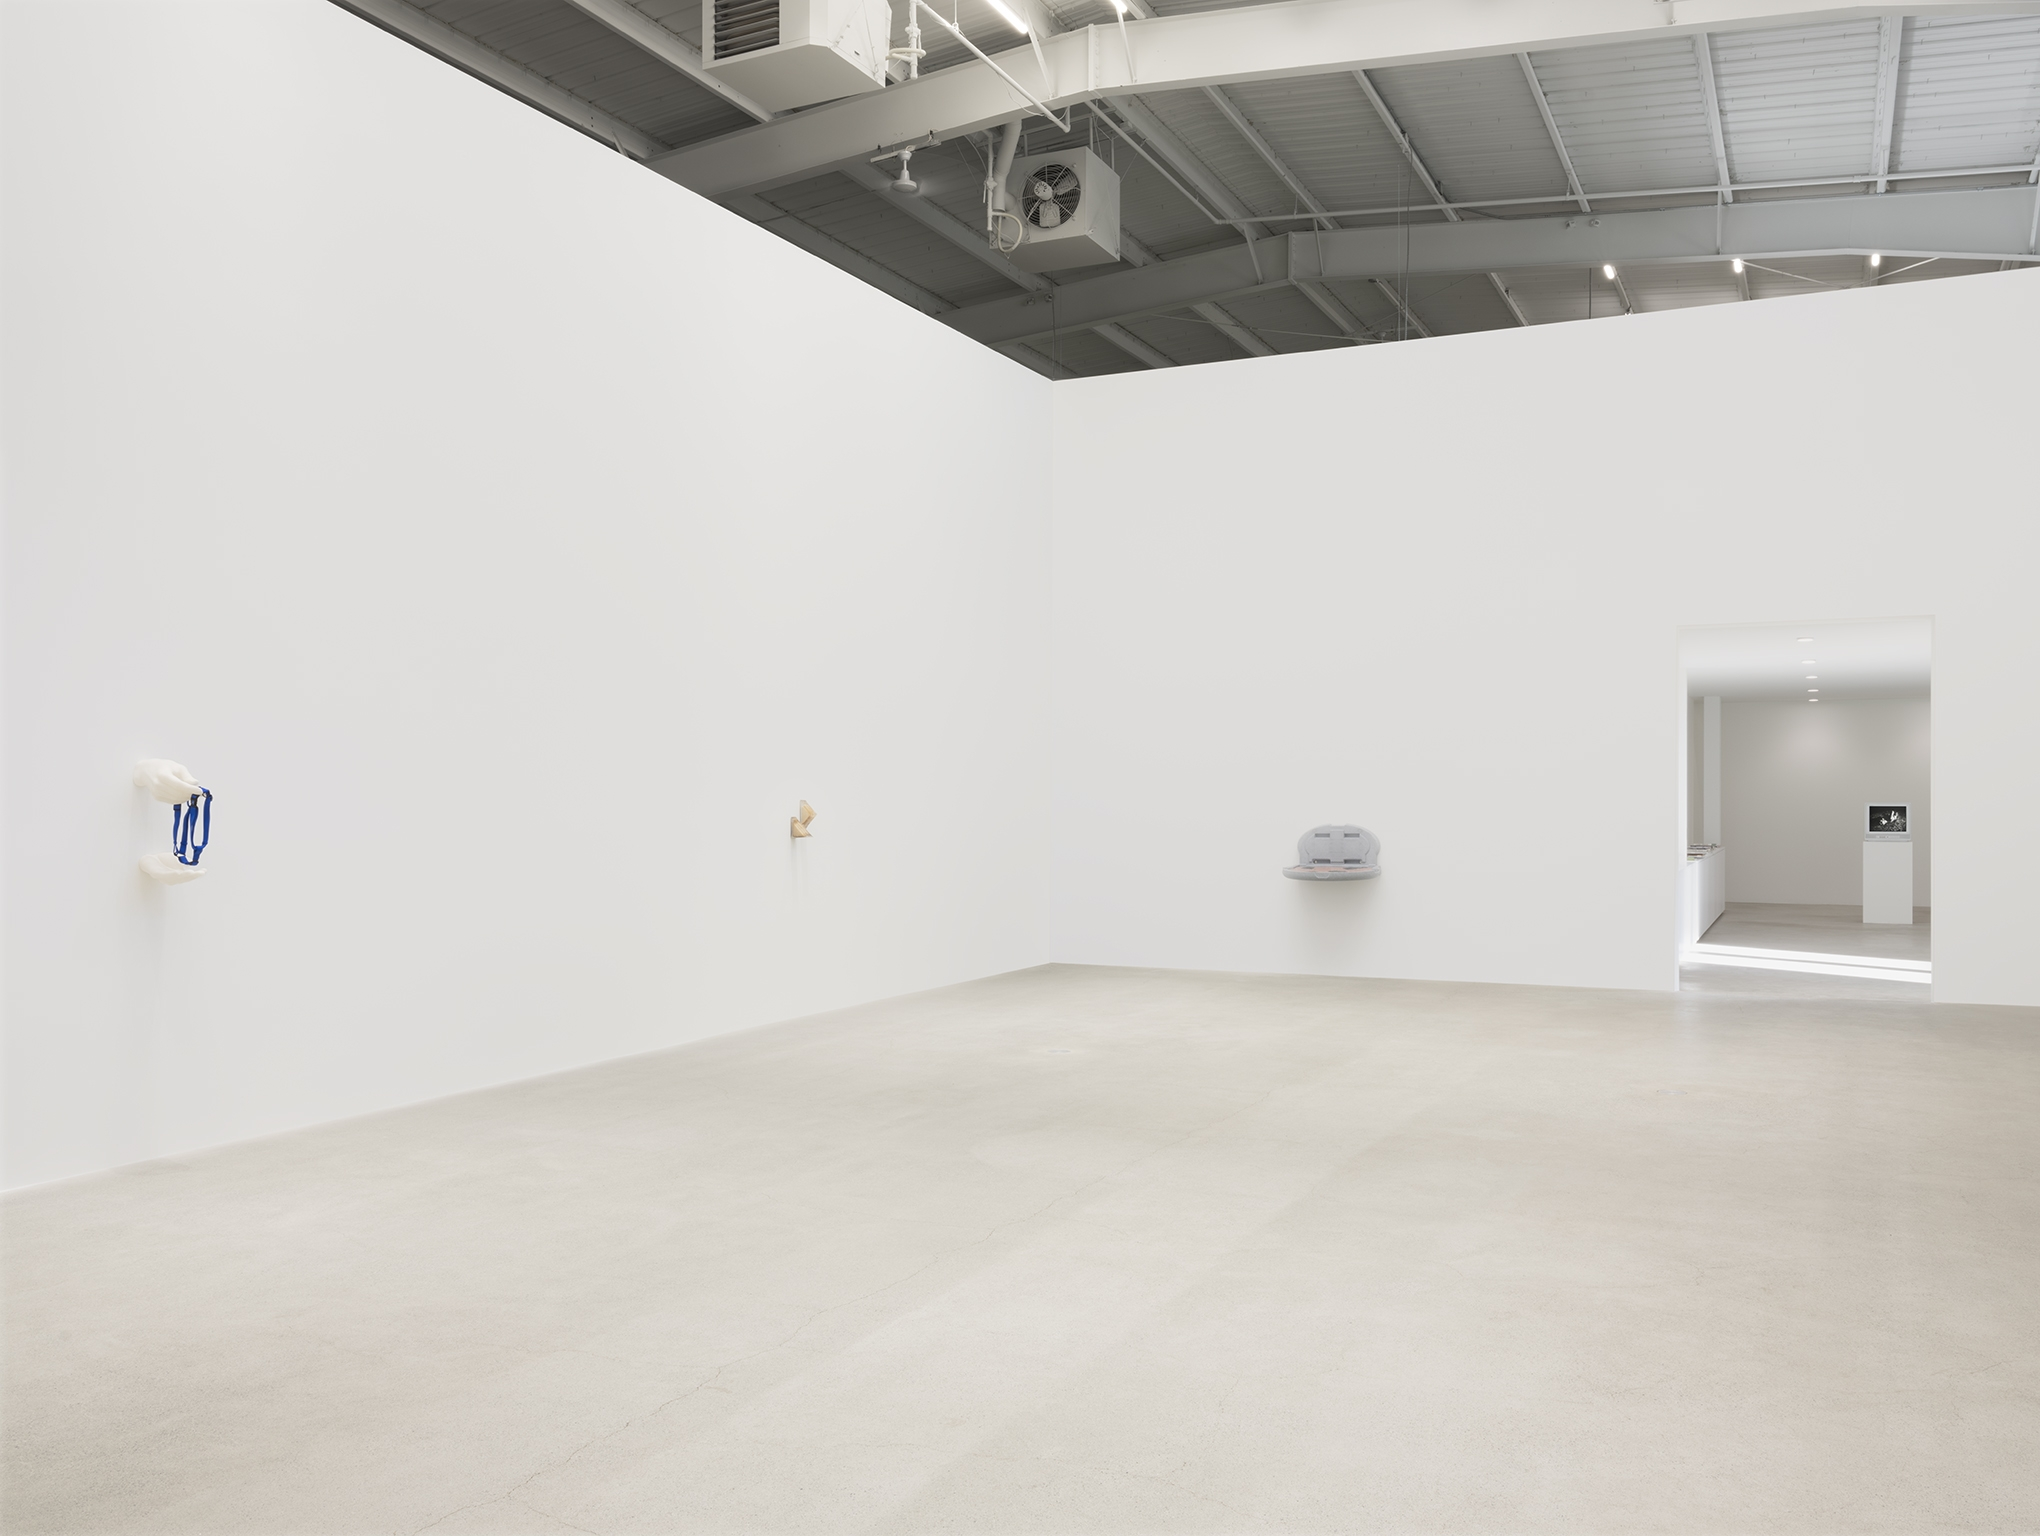 Chris Burden, ​Alex Frost, Myfanwy MacLeod, Nicole Wermers, installation view, Unexplained Parade, Catriona Jeffries, Vancouver, March 27, 2019​​ by